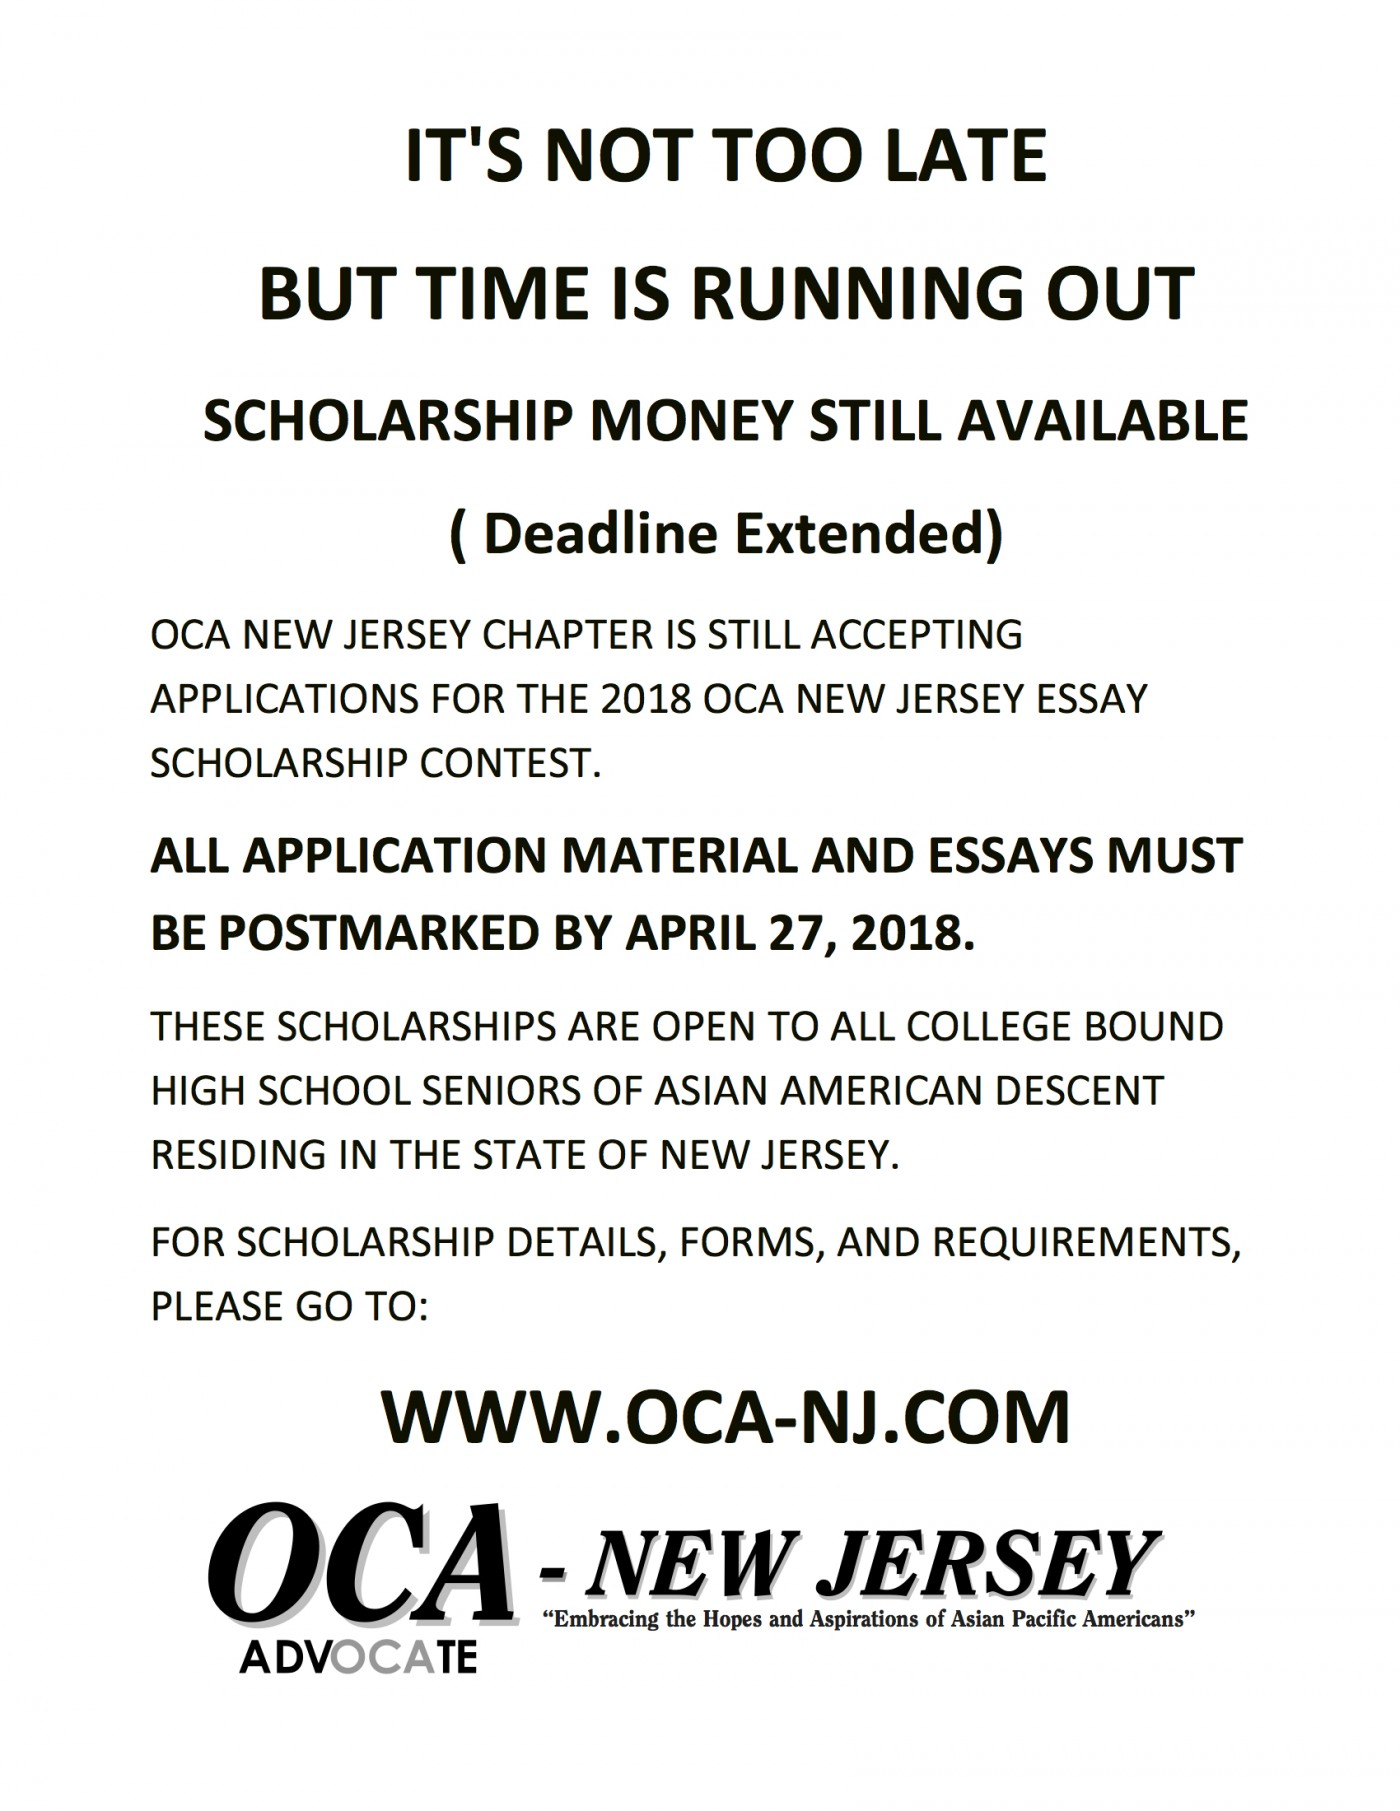 014 Essay Example Scholarships Entended Deadline Oca Nj Shocking For High School Sophomores No 2018 1400